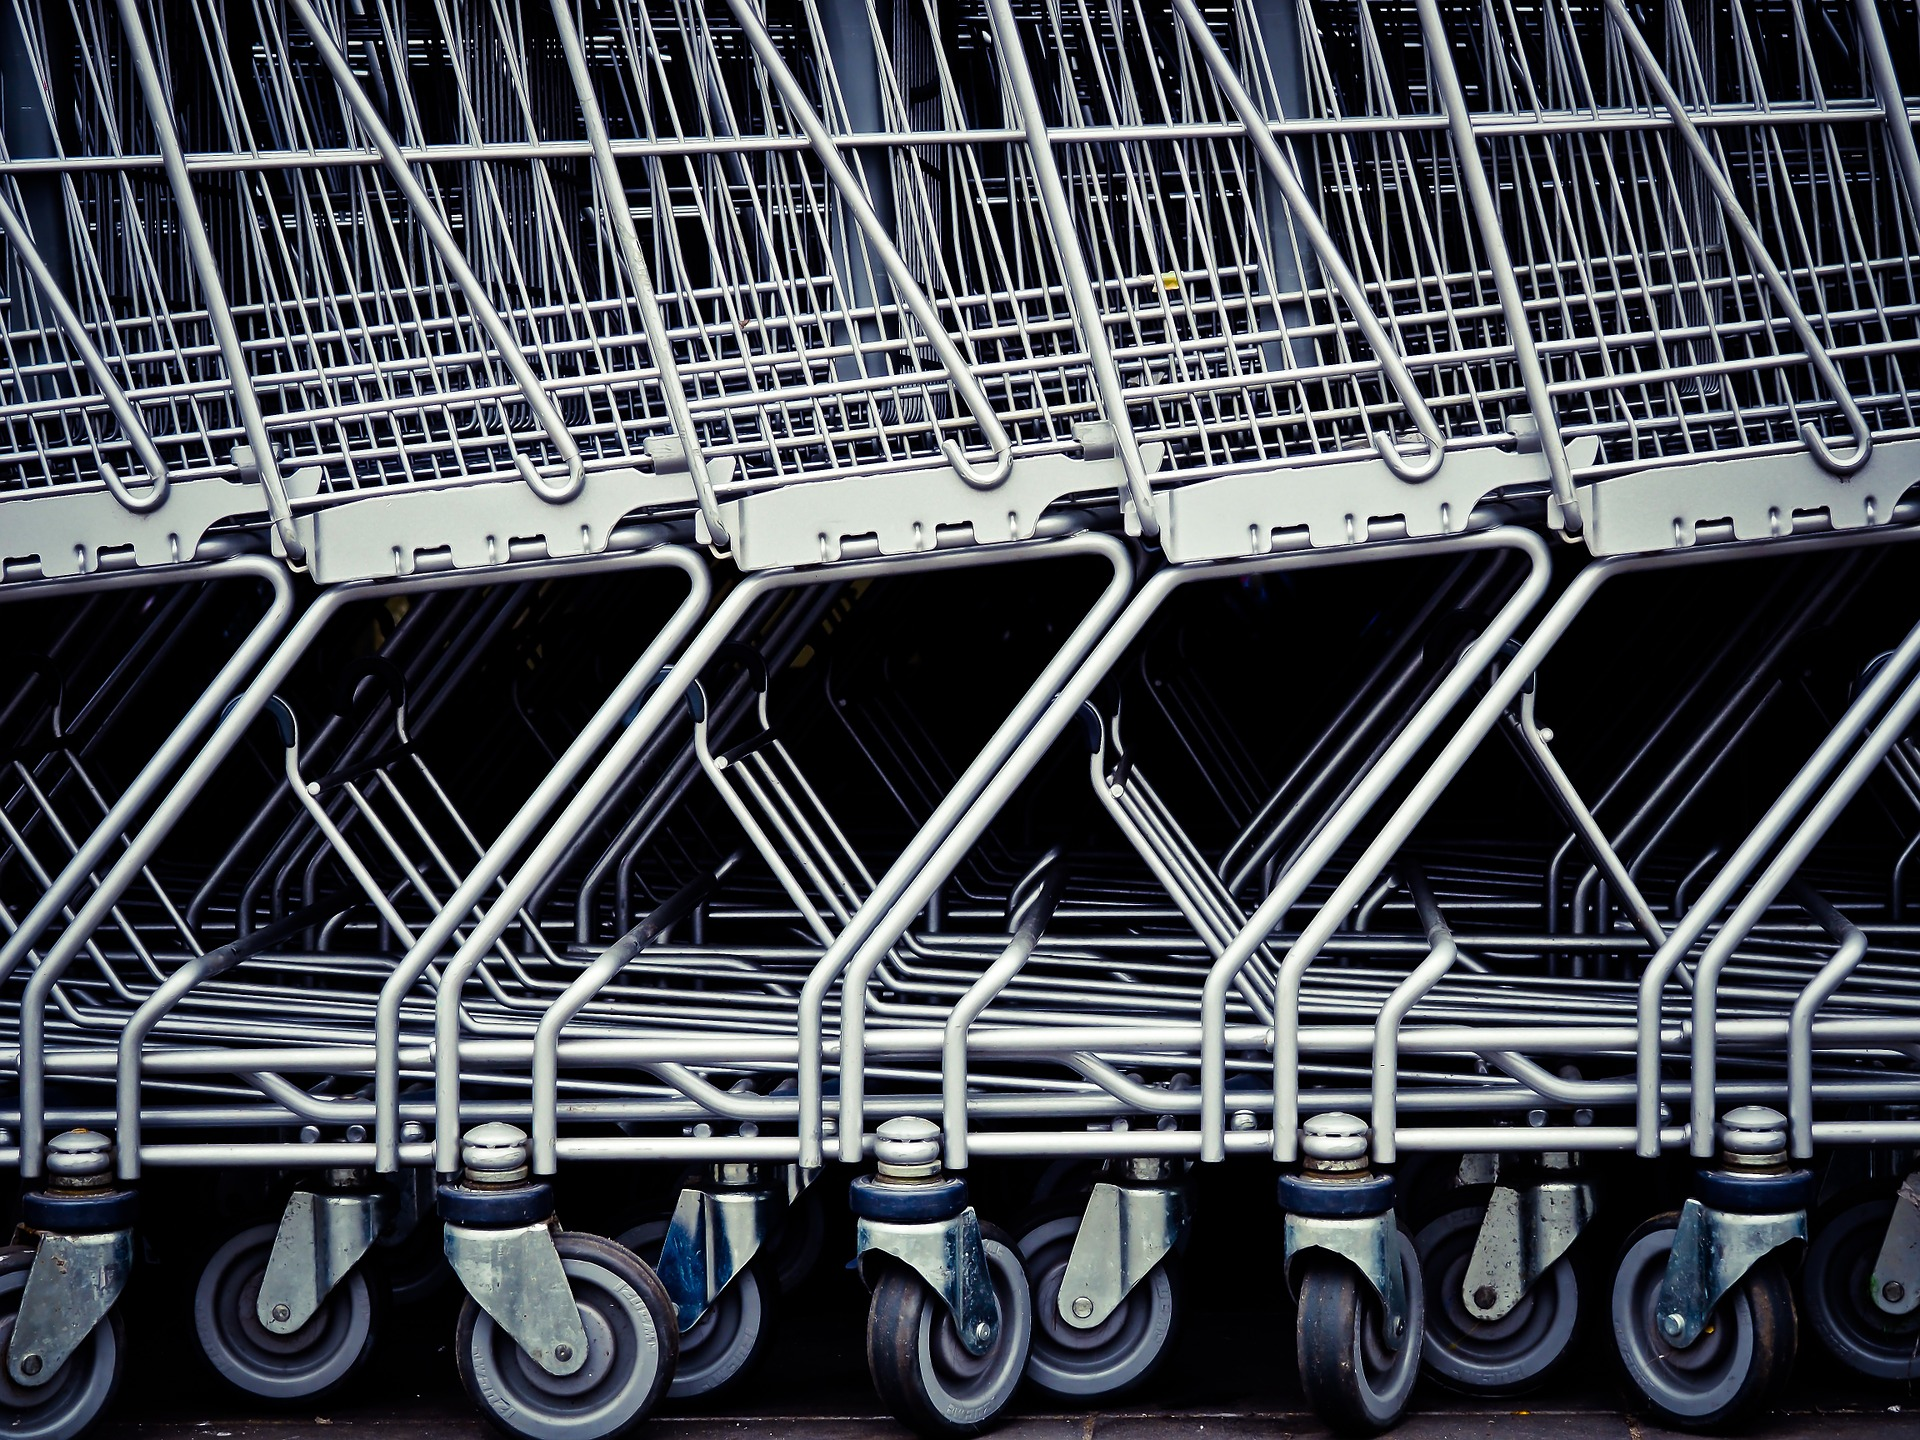 https://pixabay.com/photos/shopping-cart-shopping-supermarket-1275482/